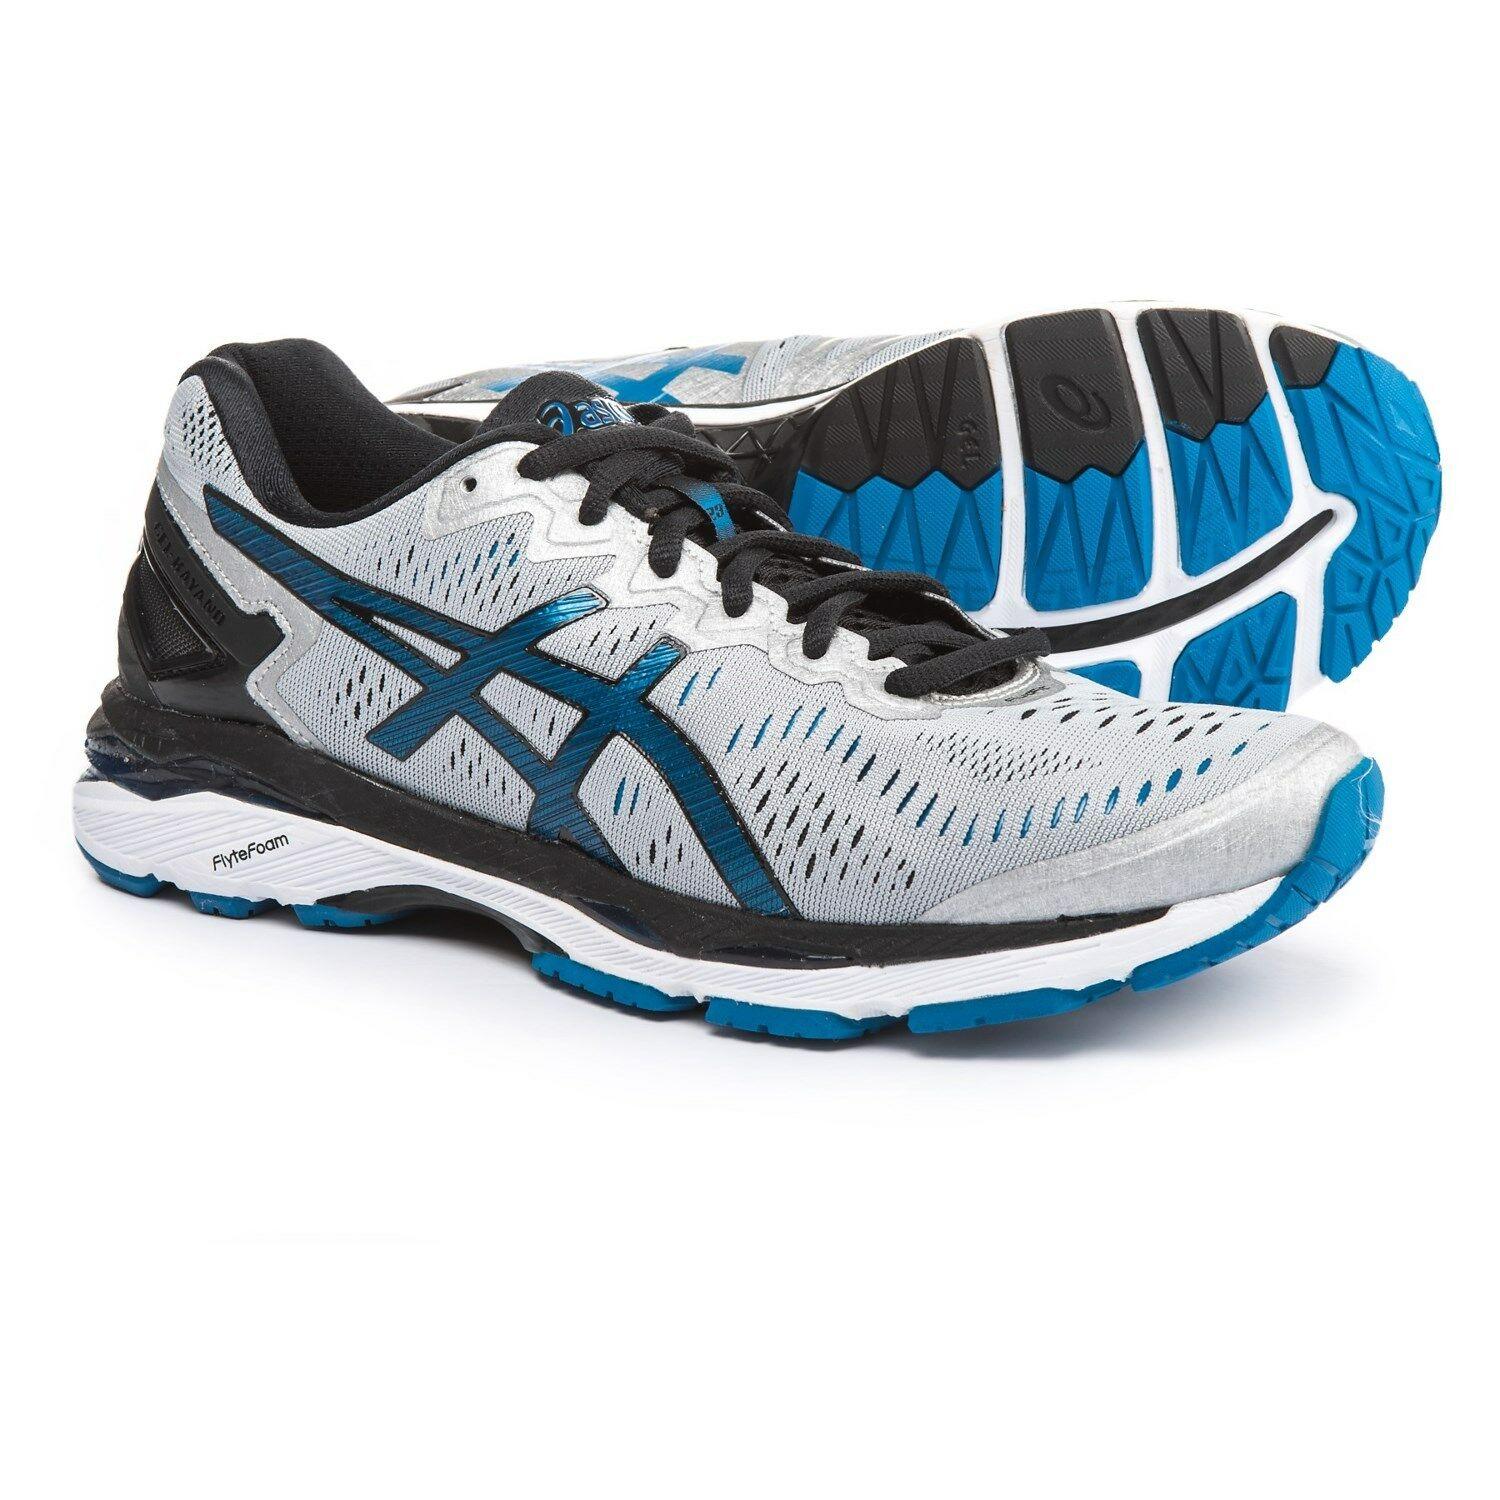 New Mens  Asics Gel-Kayano 23 T646N-9345 Silver/Black Running Shoes Size 8